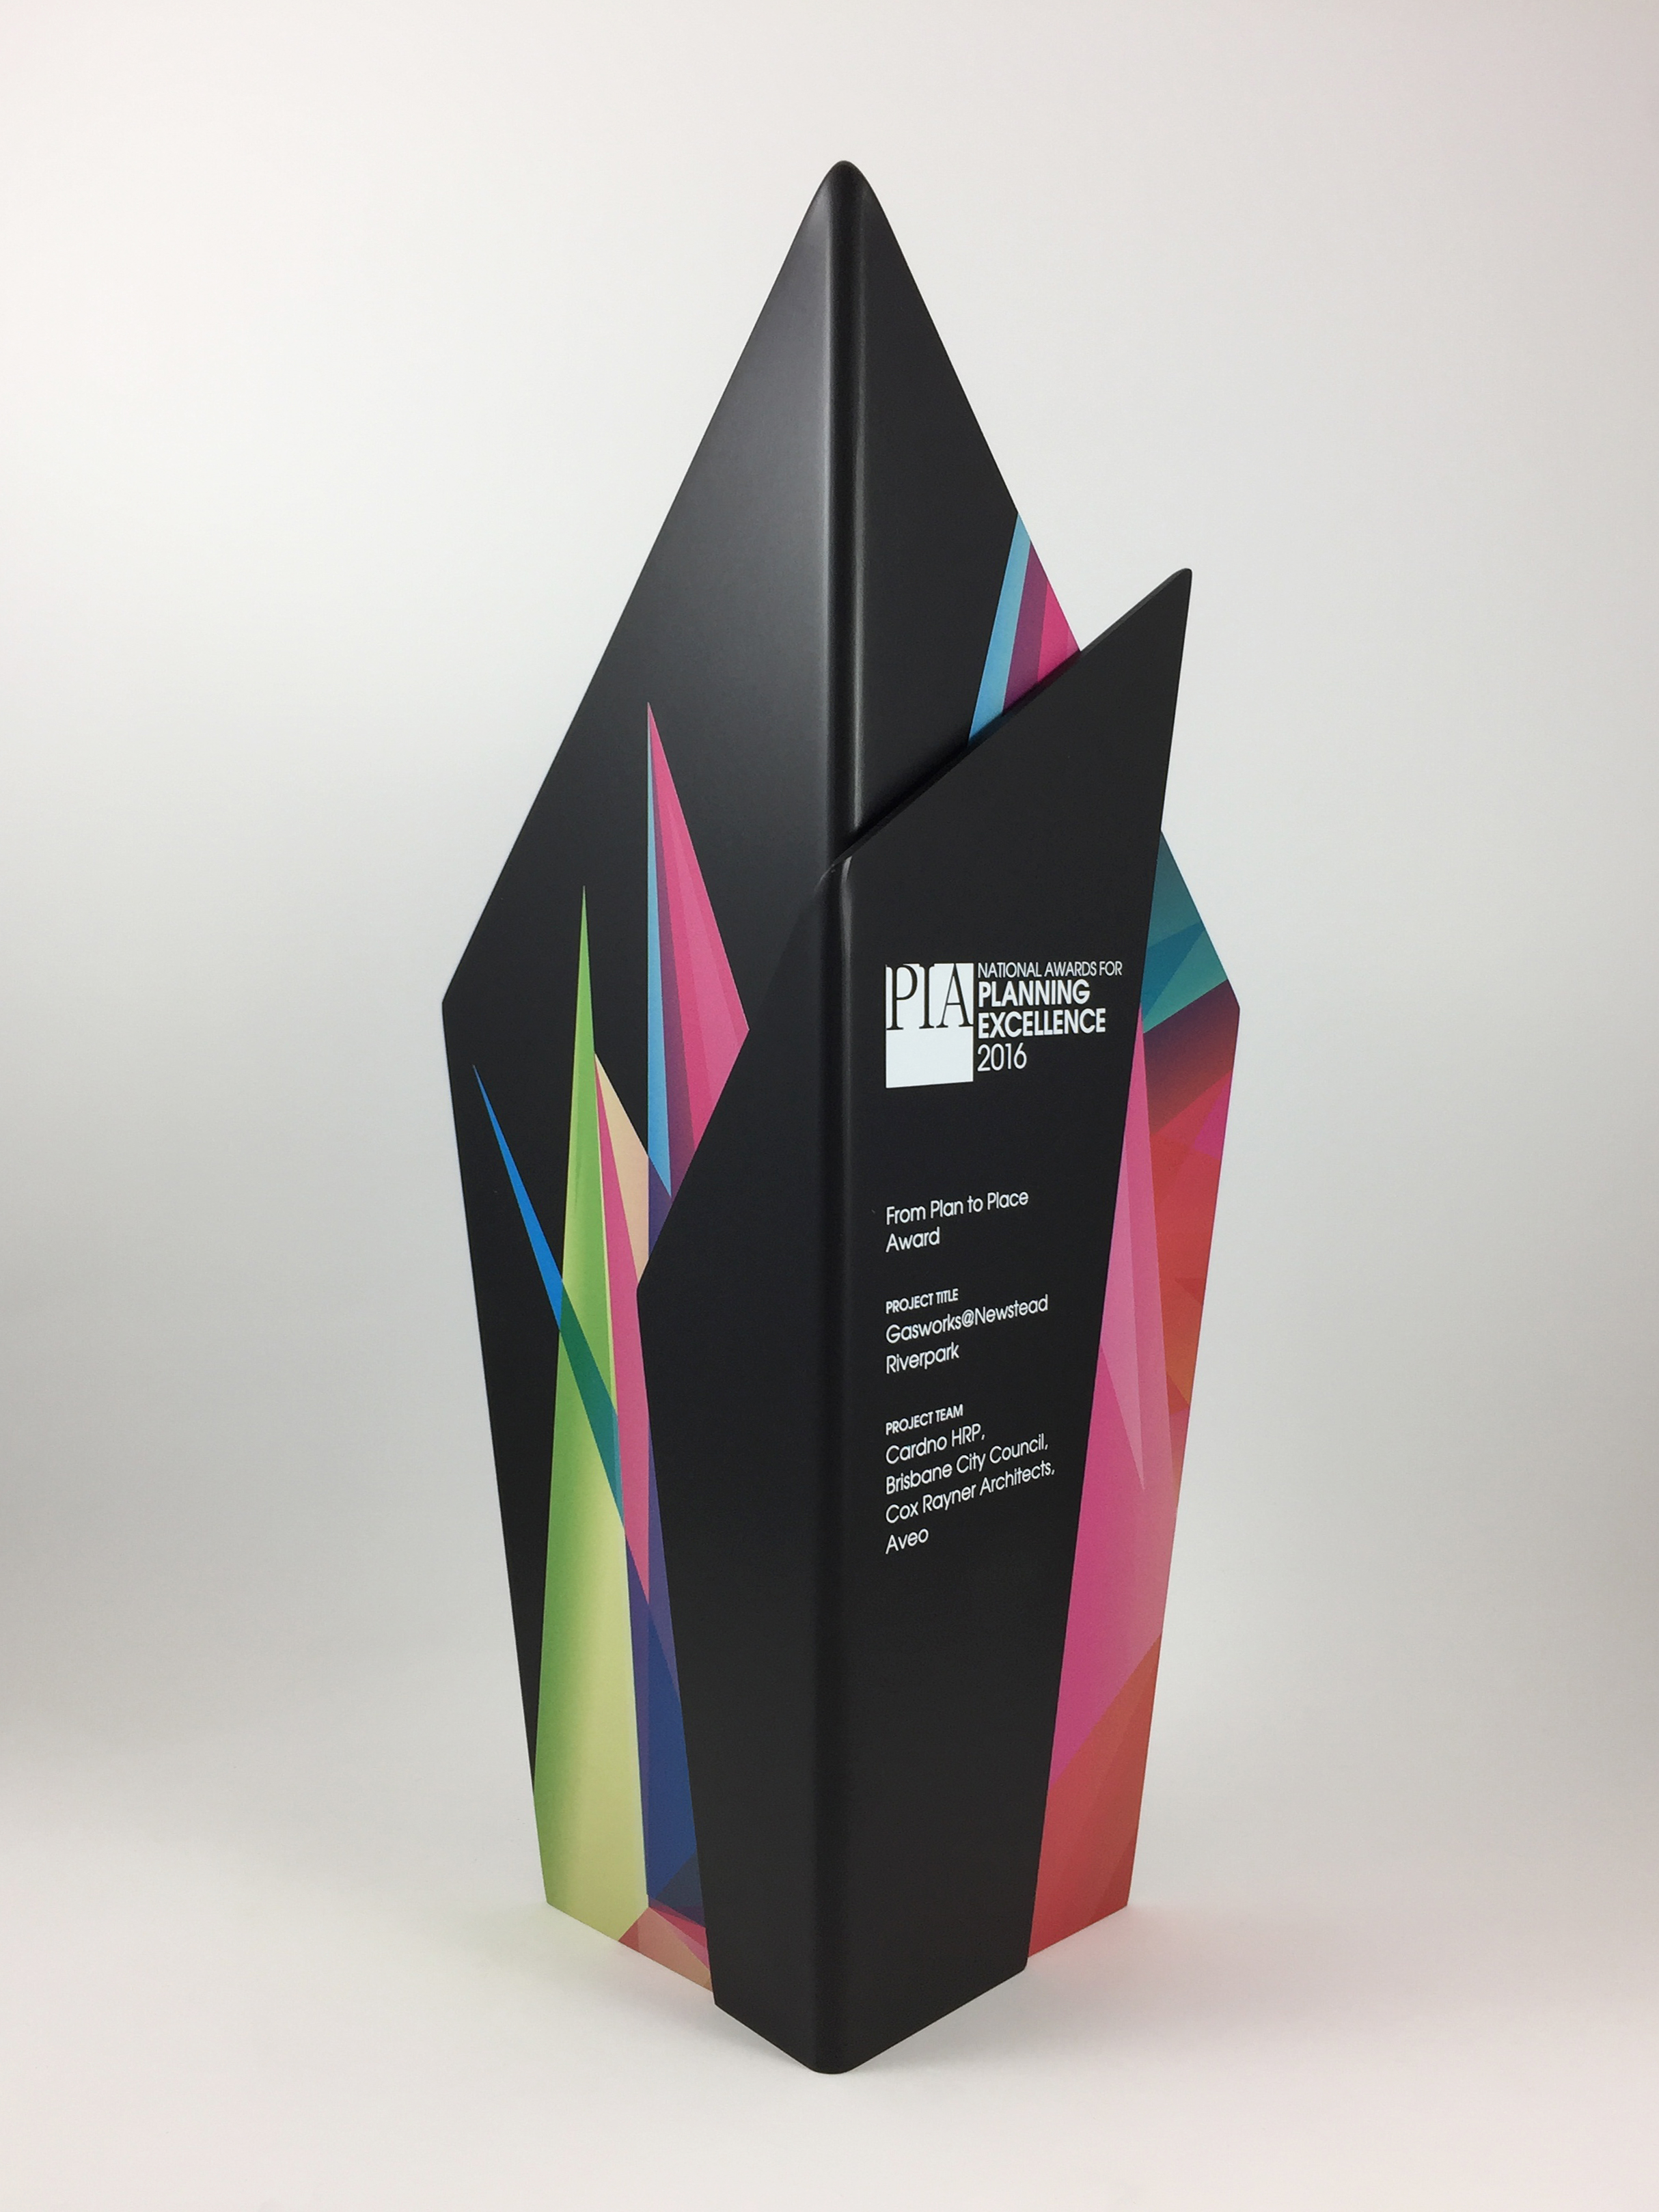 Planning-Institute-Australia-award-aluminium-trophy-01.jpg